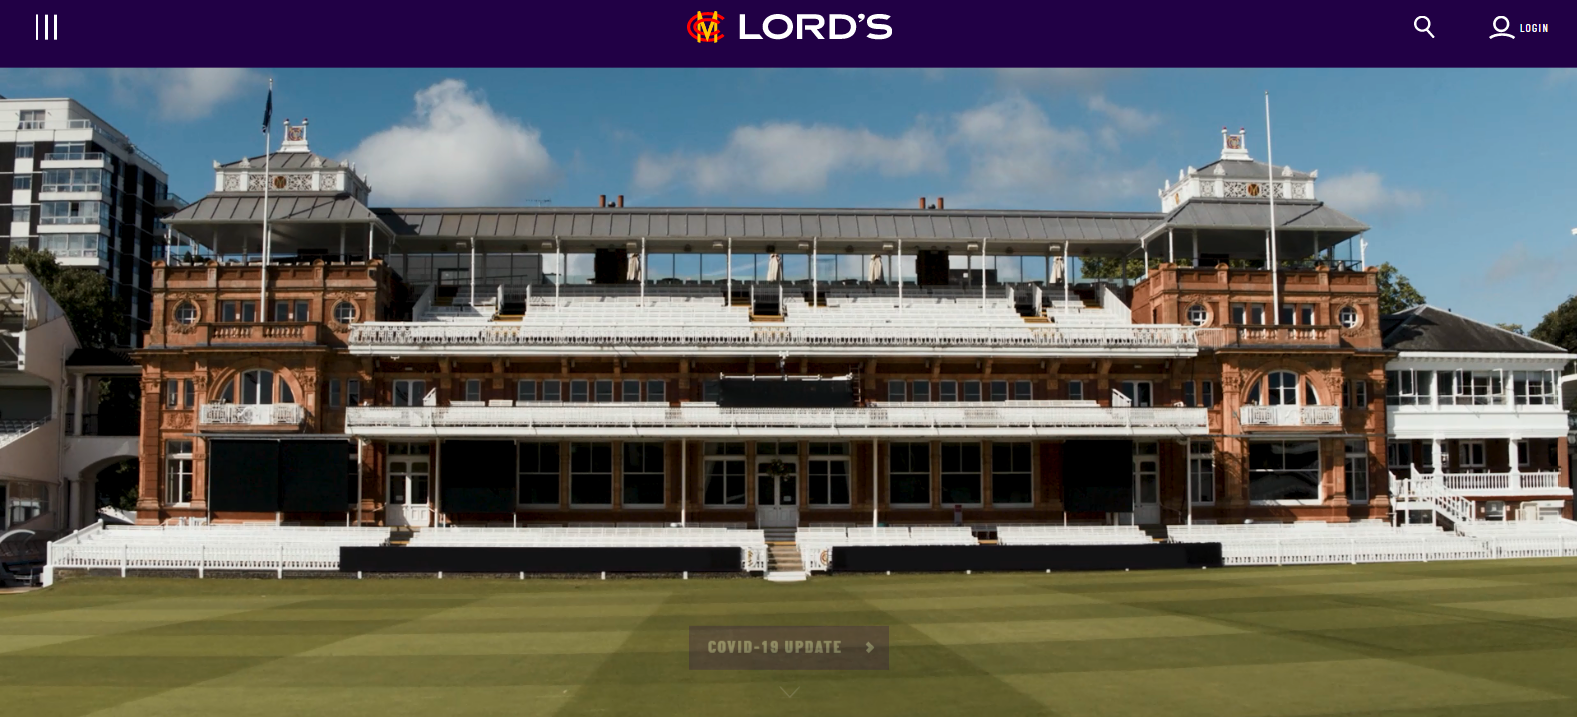 Lords.org: Cricket blog and Website